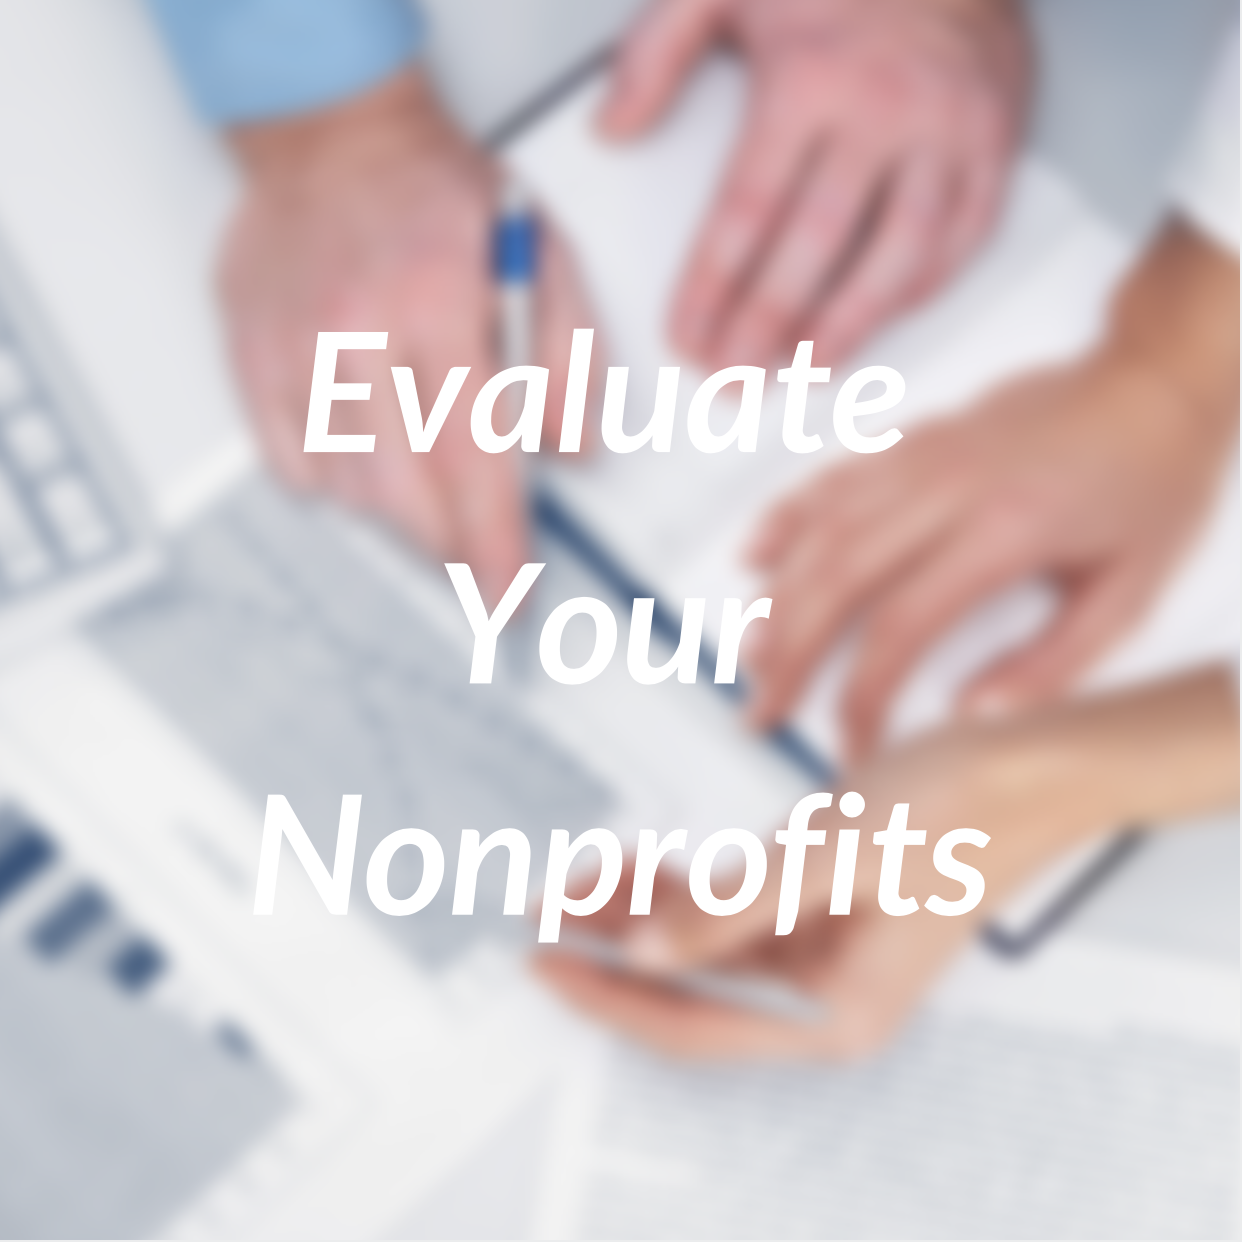 Evaluate Your Nonprofits